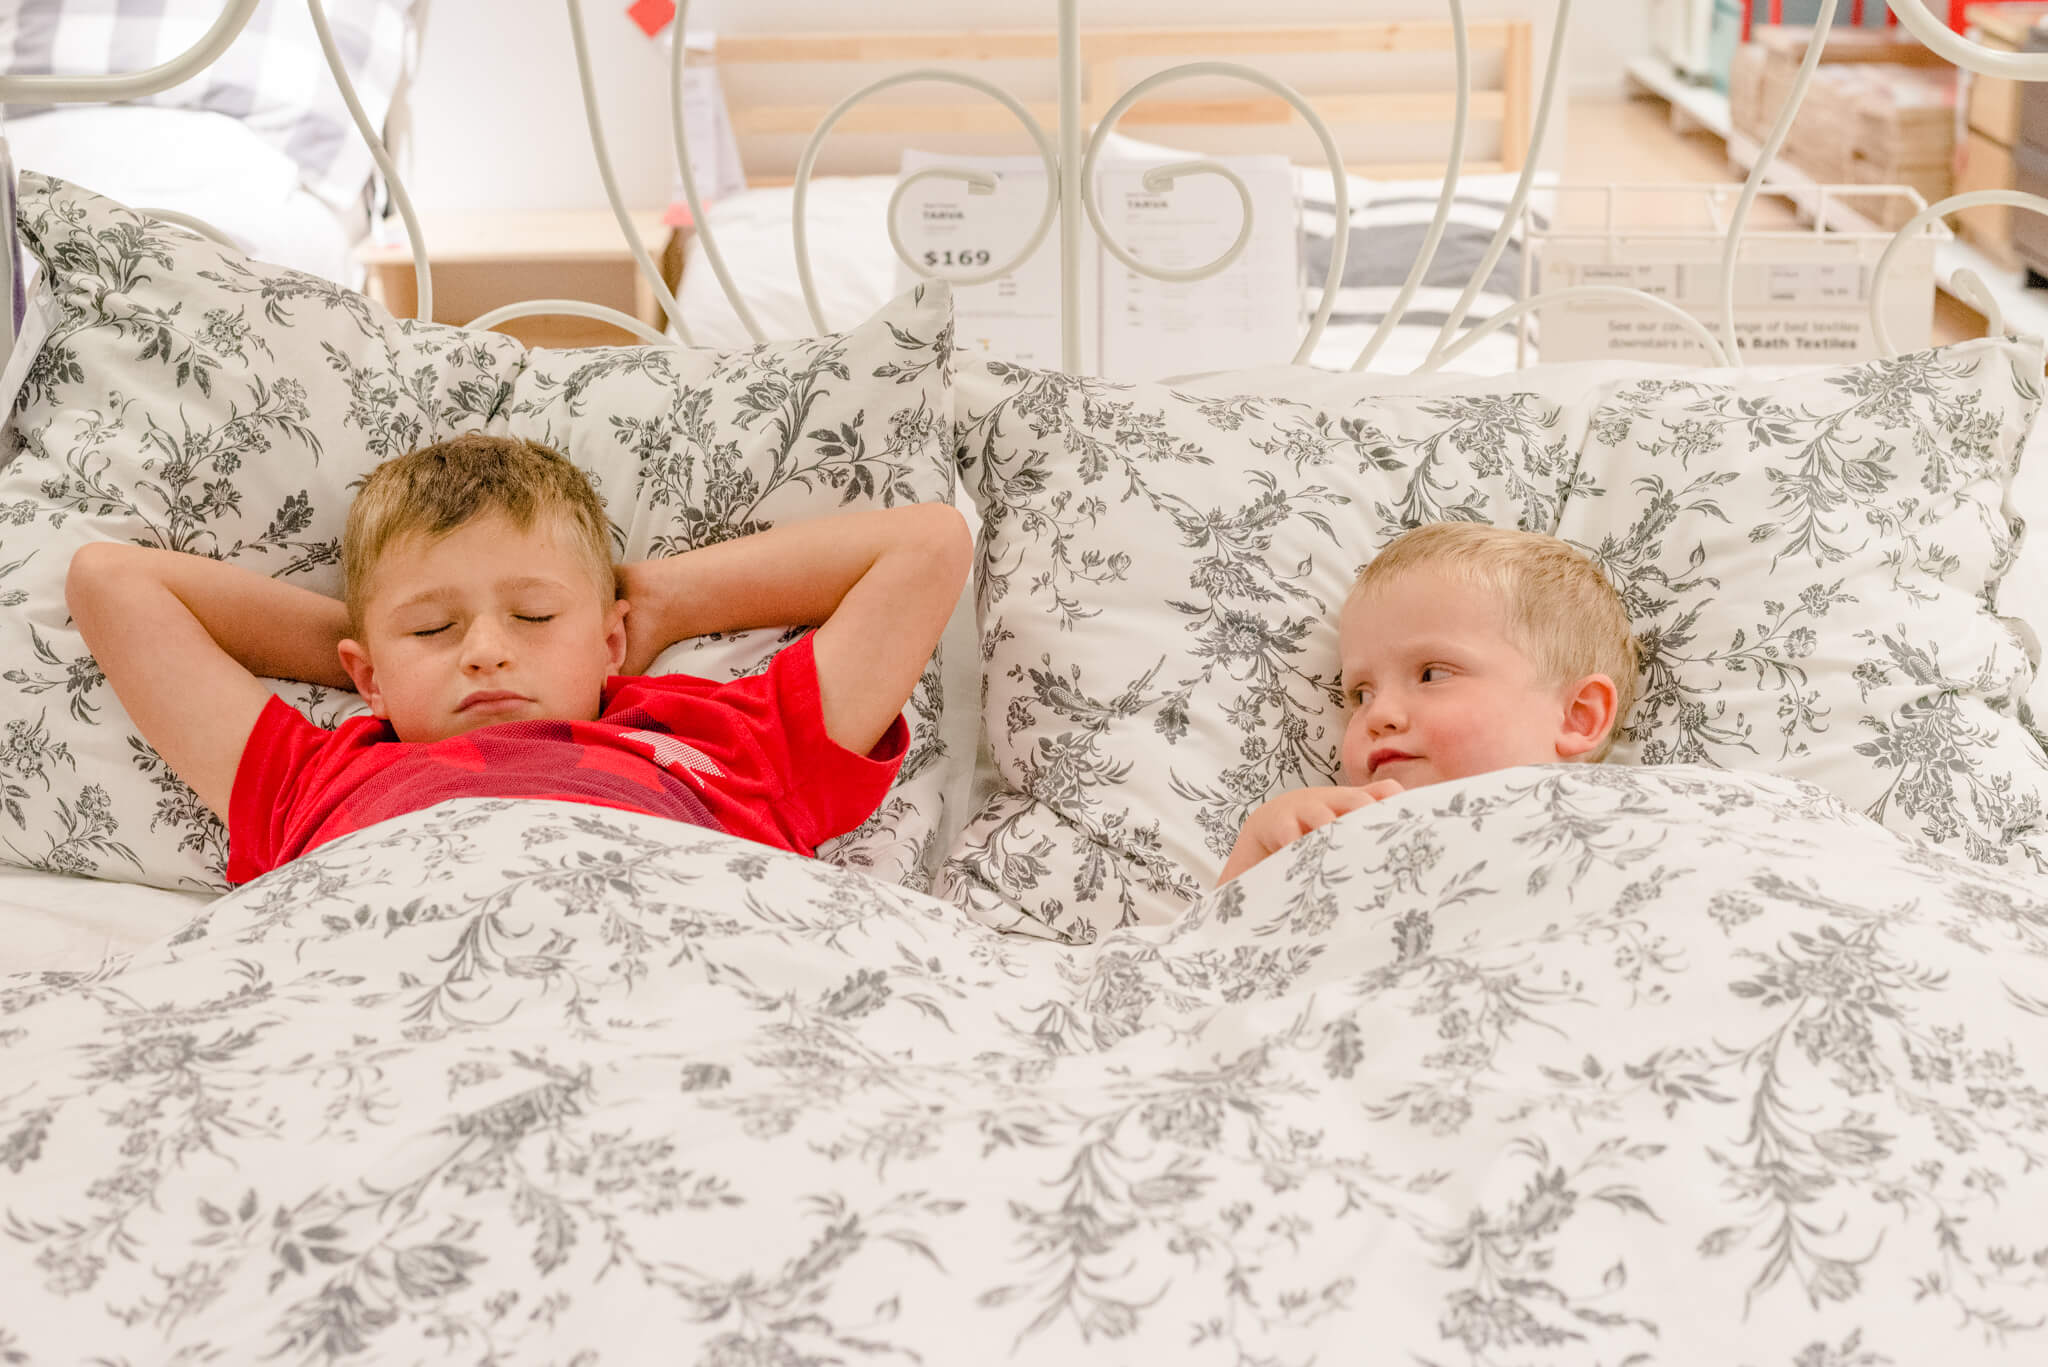 Two boys playing at IKEA